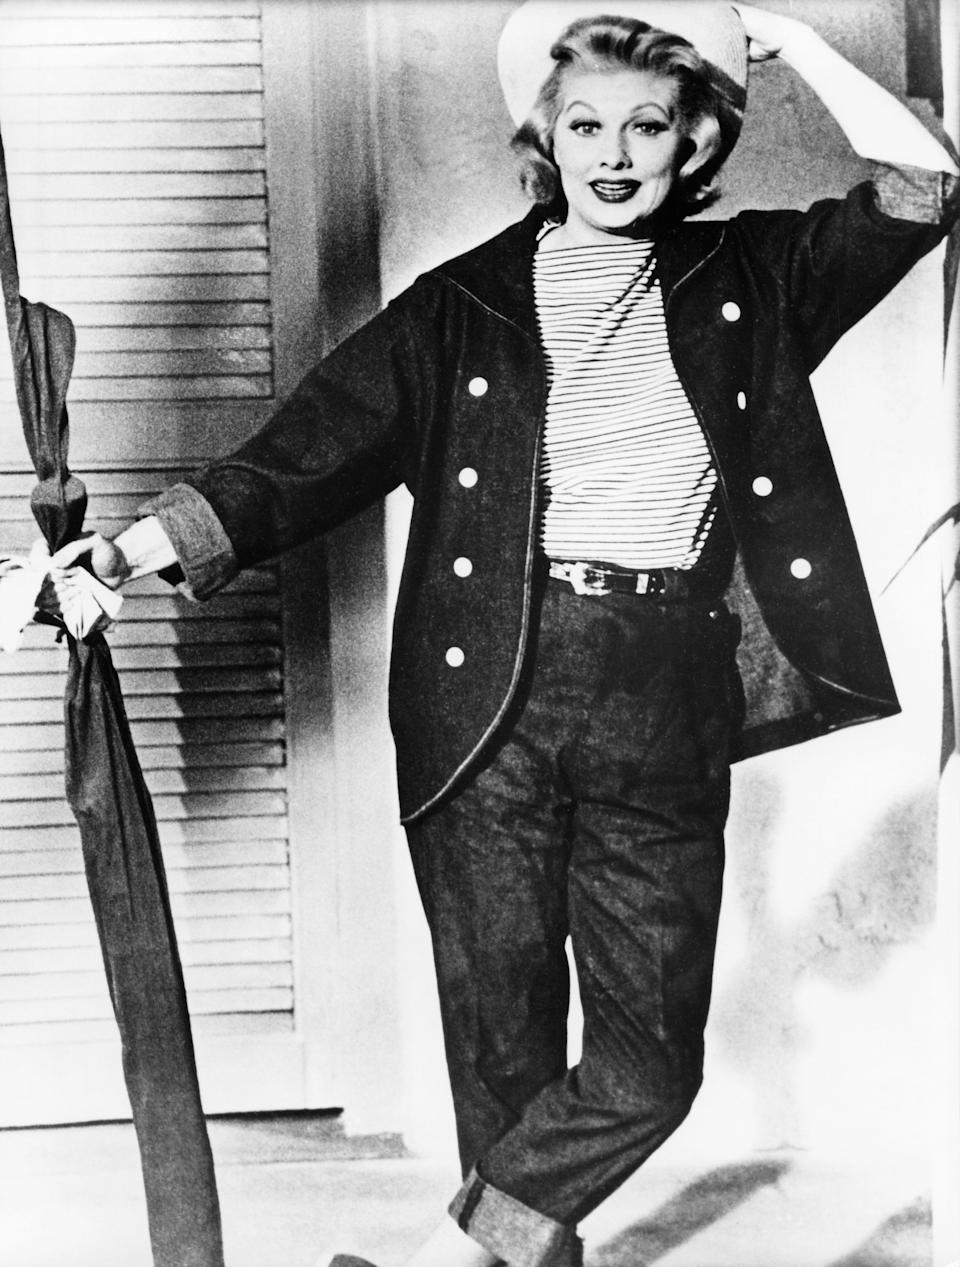 Ball wears a matching denim outfit in this photo from 1955.